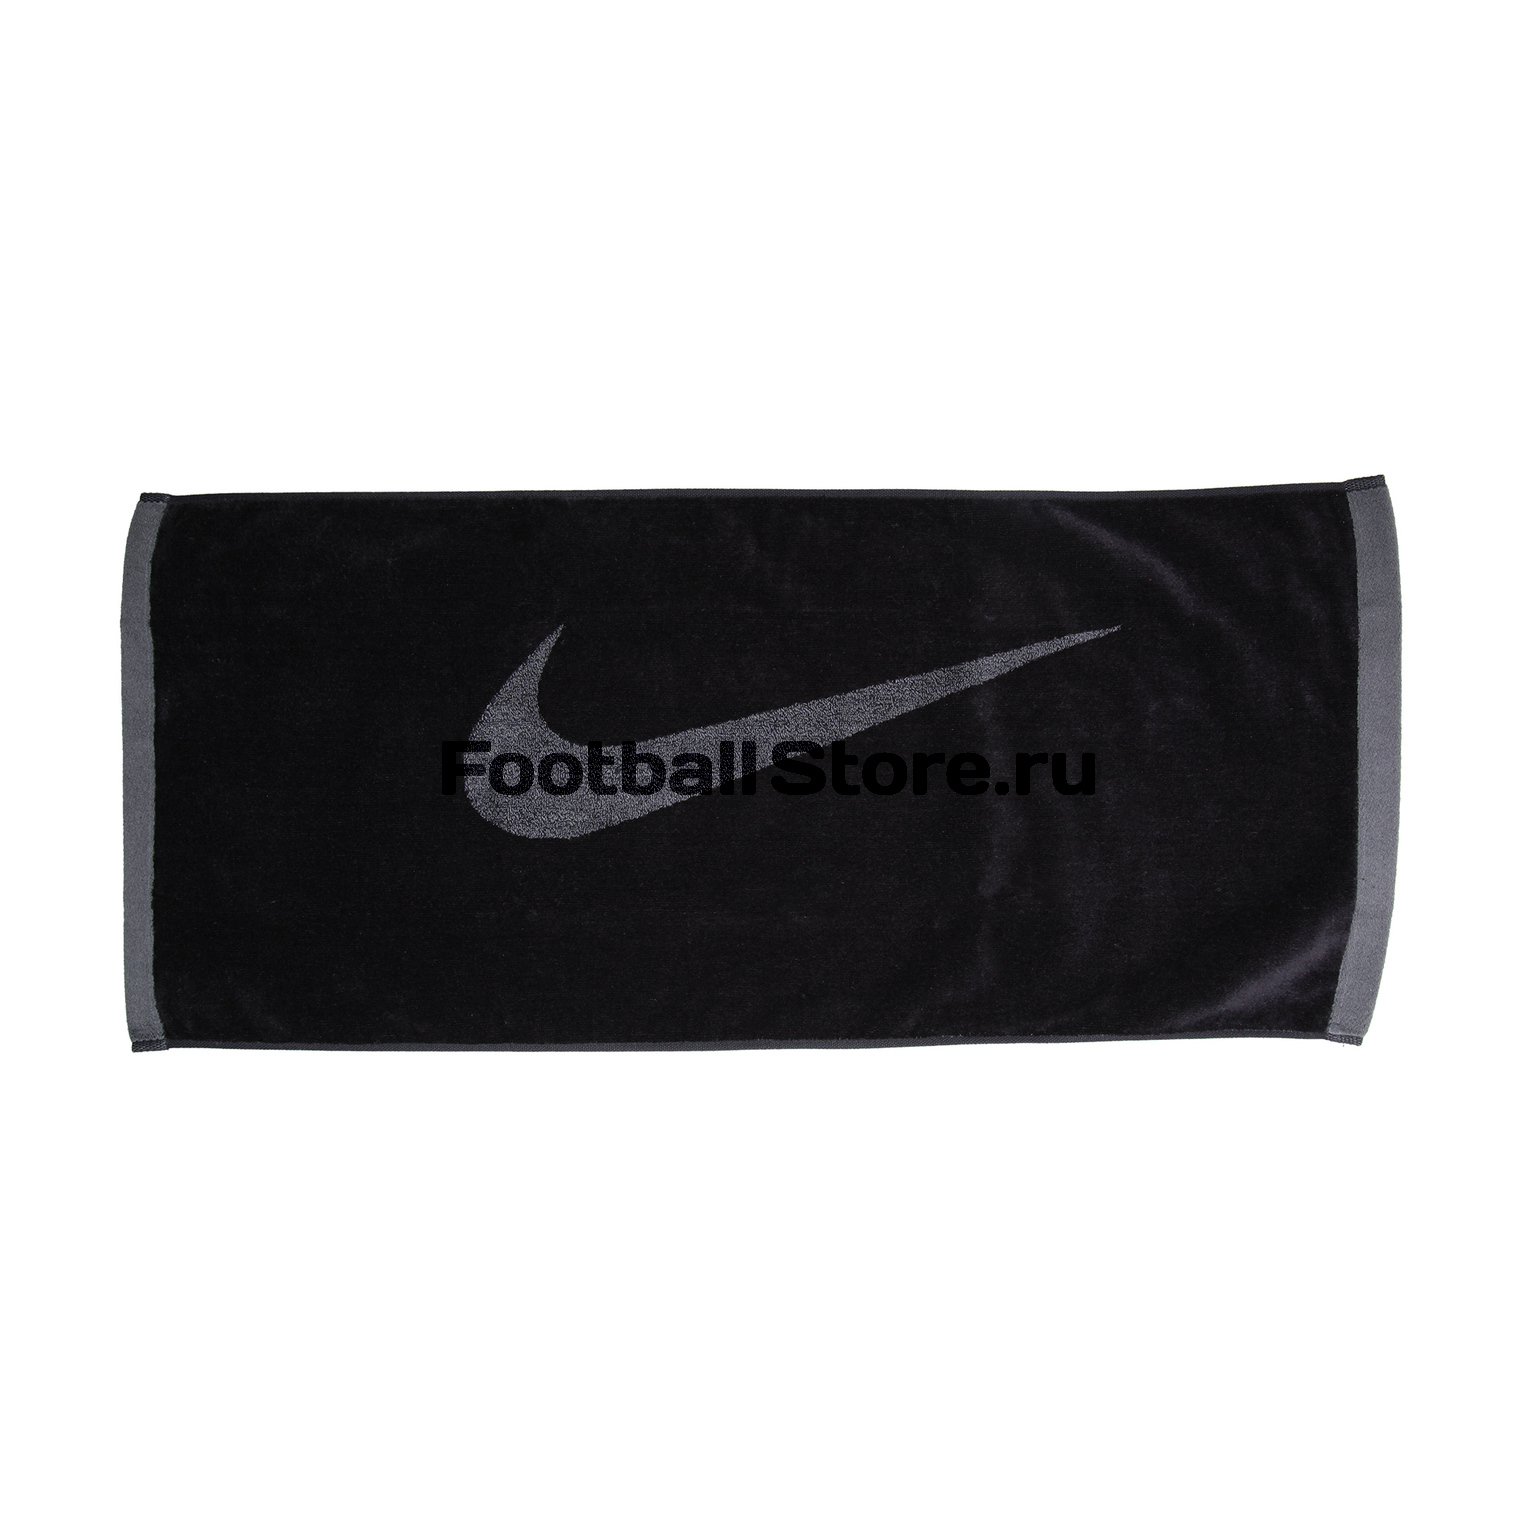 Полотенце Nike Sport Towel Black N.ET.13.046.MD люстра st luce brocca sl701 503 06